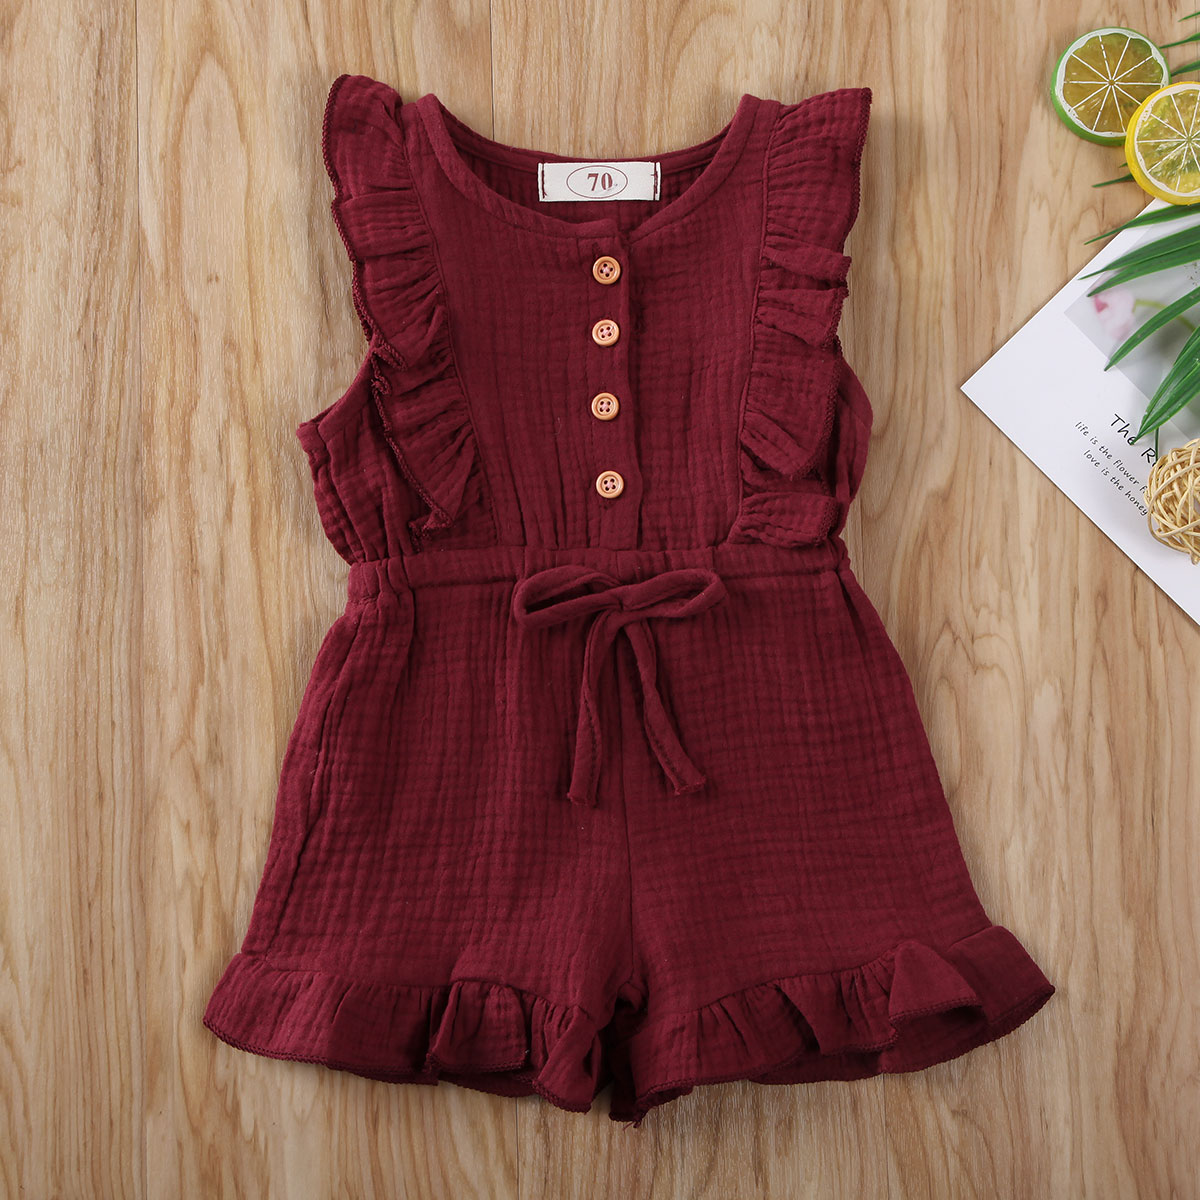 Pudcoco Newborn Baby Boy Girl Clothes Solid Color Sleeveless Ruffle Button Frenulum Romper Jumpsuit One-Piece Outfit Cotton Set